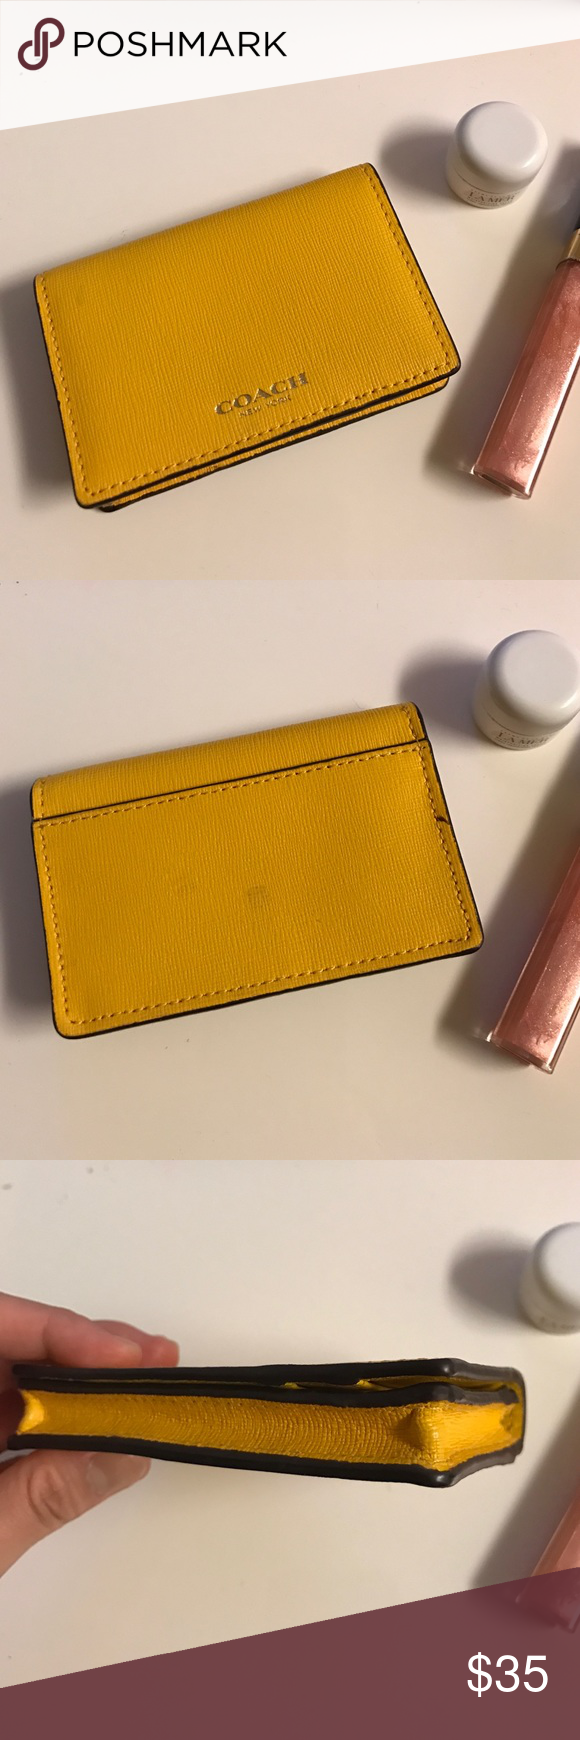 Yellow Coach card case Preloved authentic Coach business card case ...